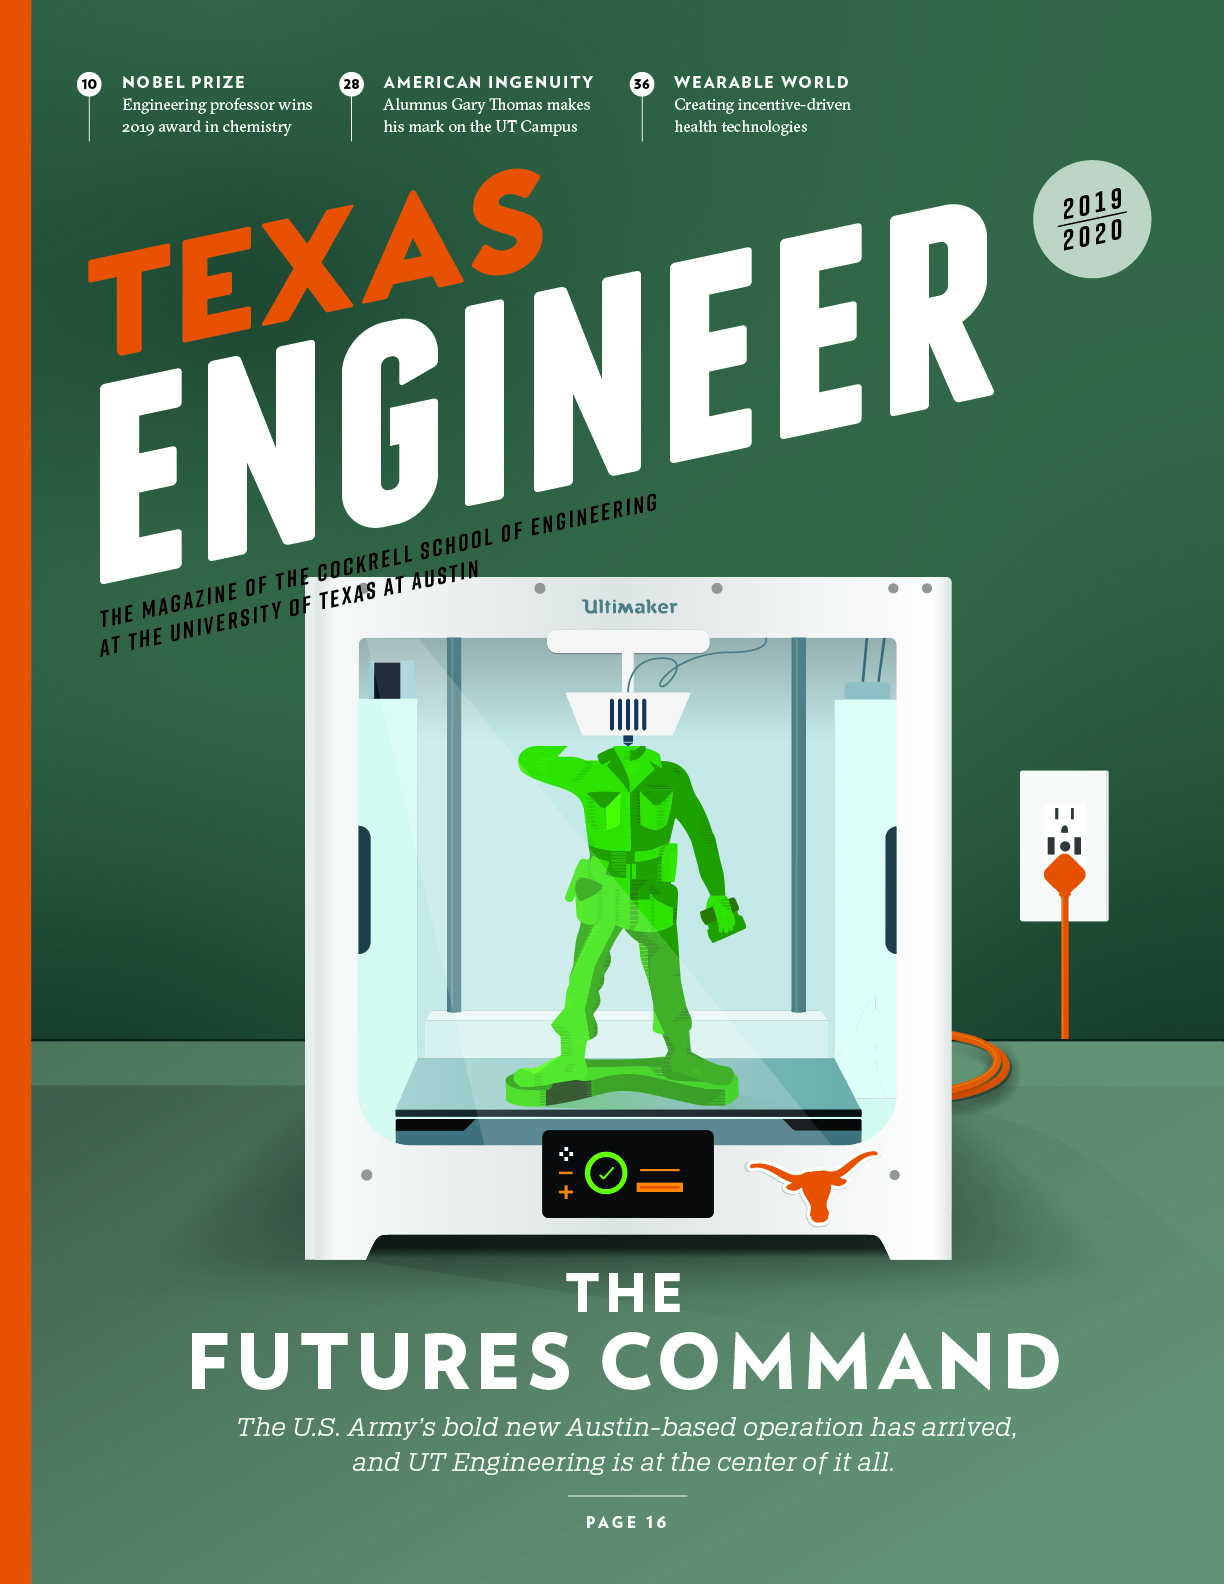 2019 Texas Engineer cover